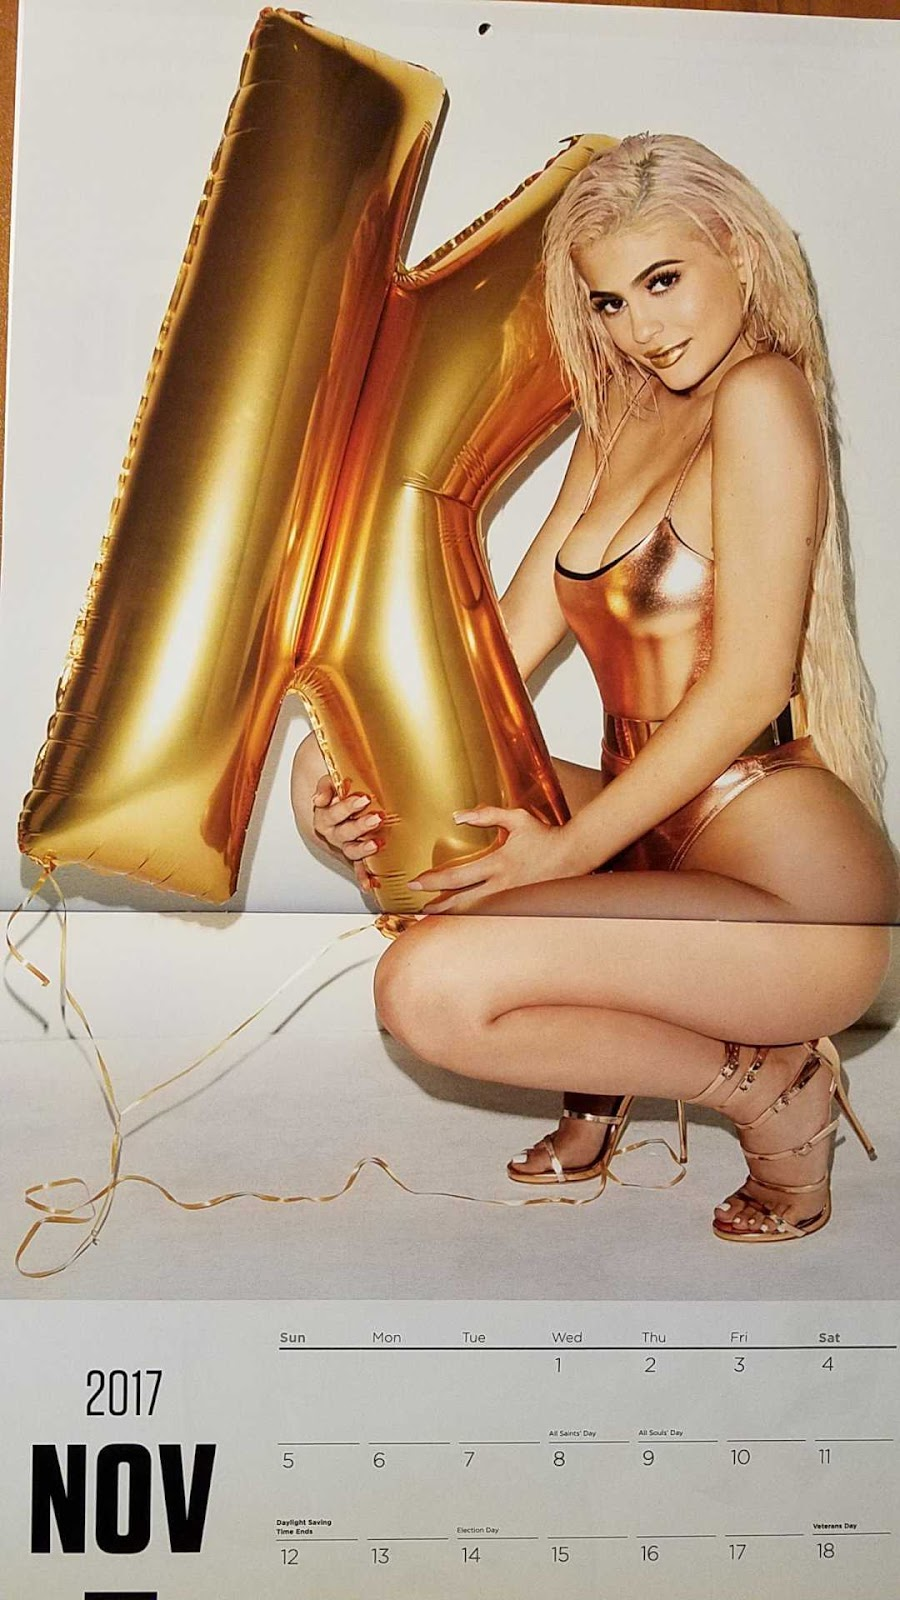 Kylie Jenner in 2017 Calendar Photoshoot by Terry Richardson